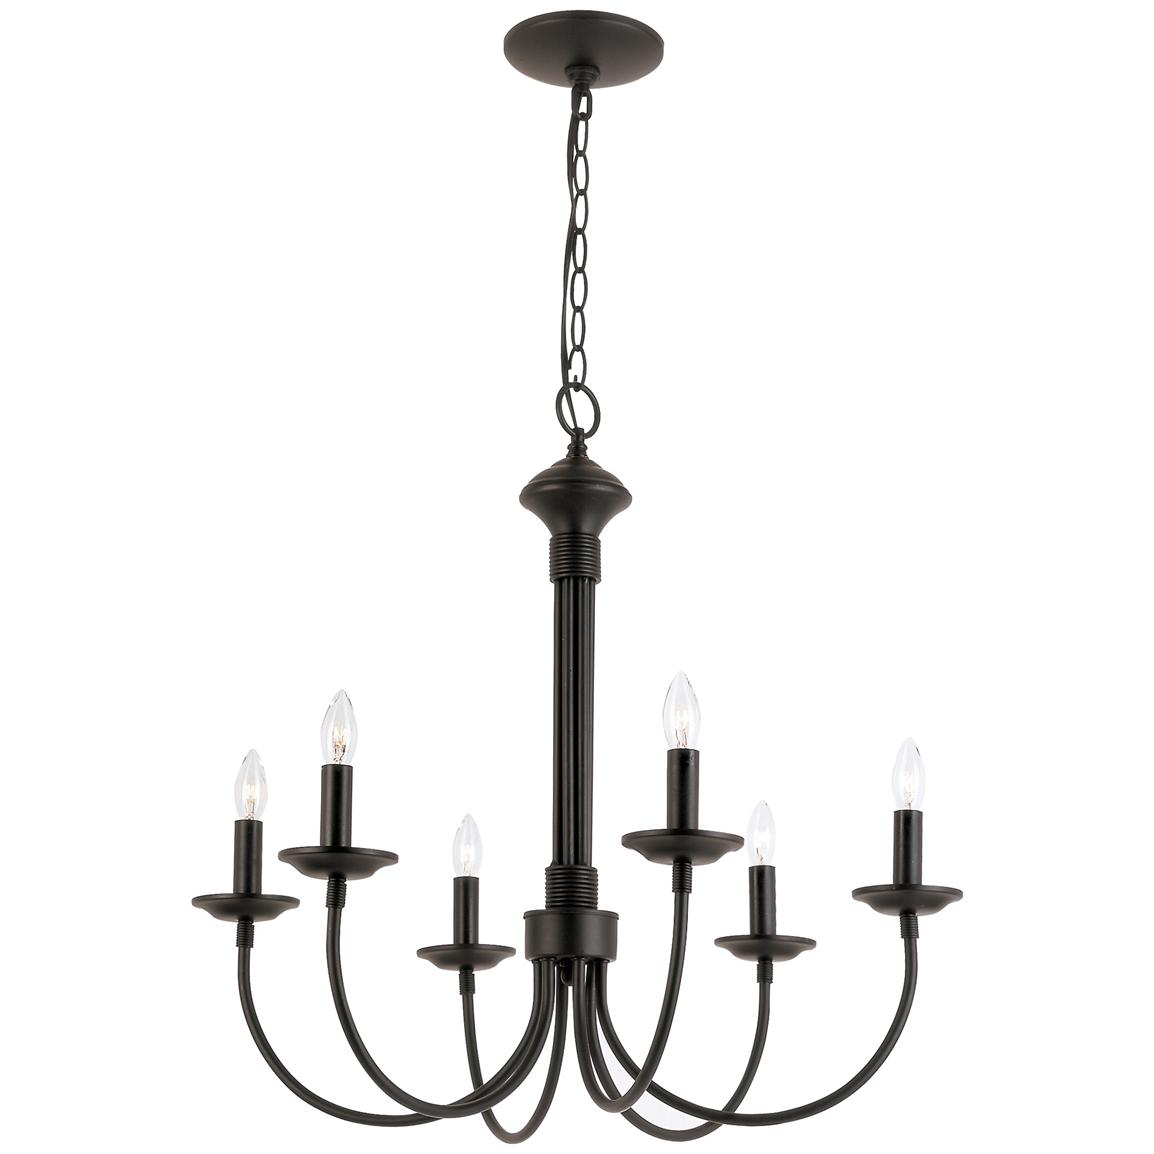 Trans Globe Lighting® Colonial Candles 6-light Chandelier, Black